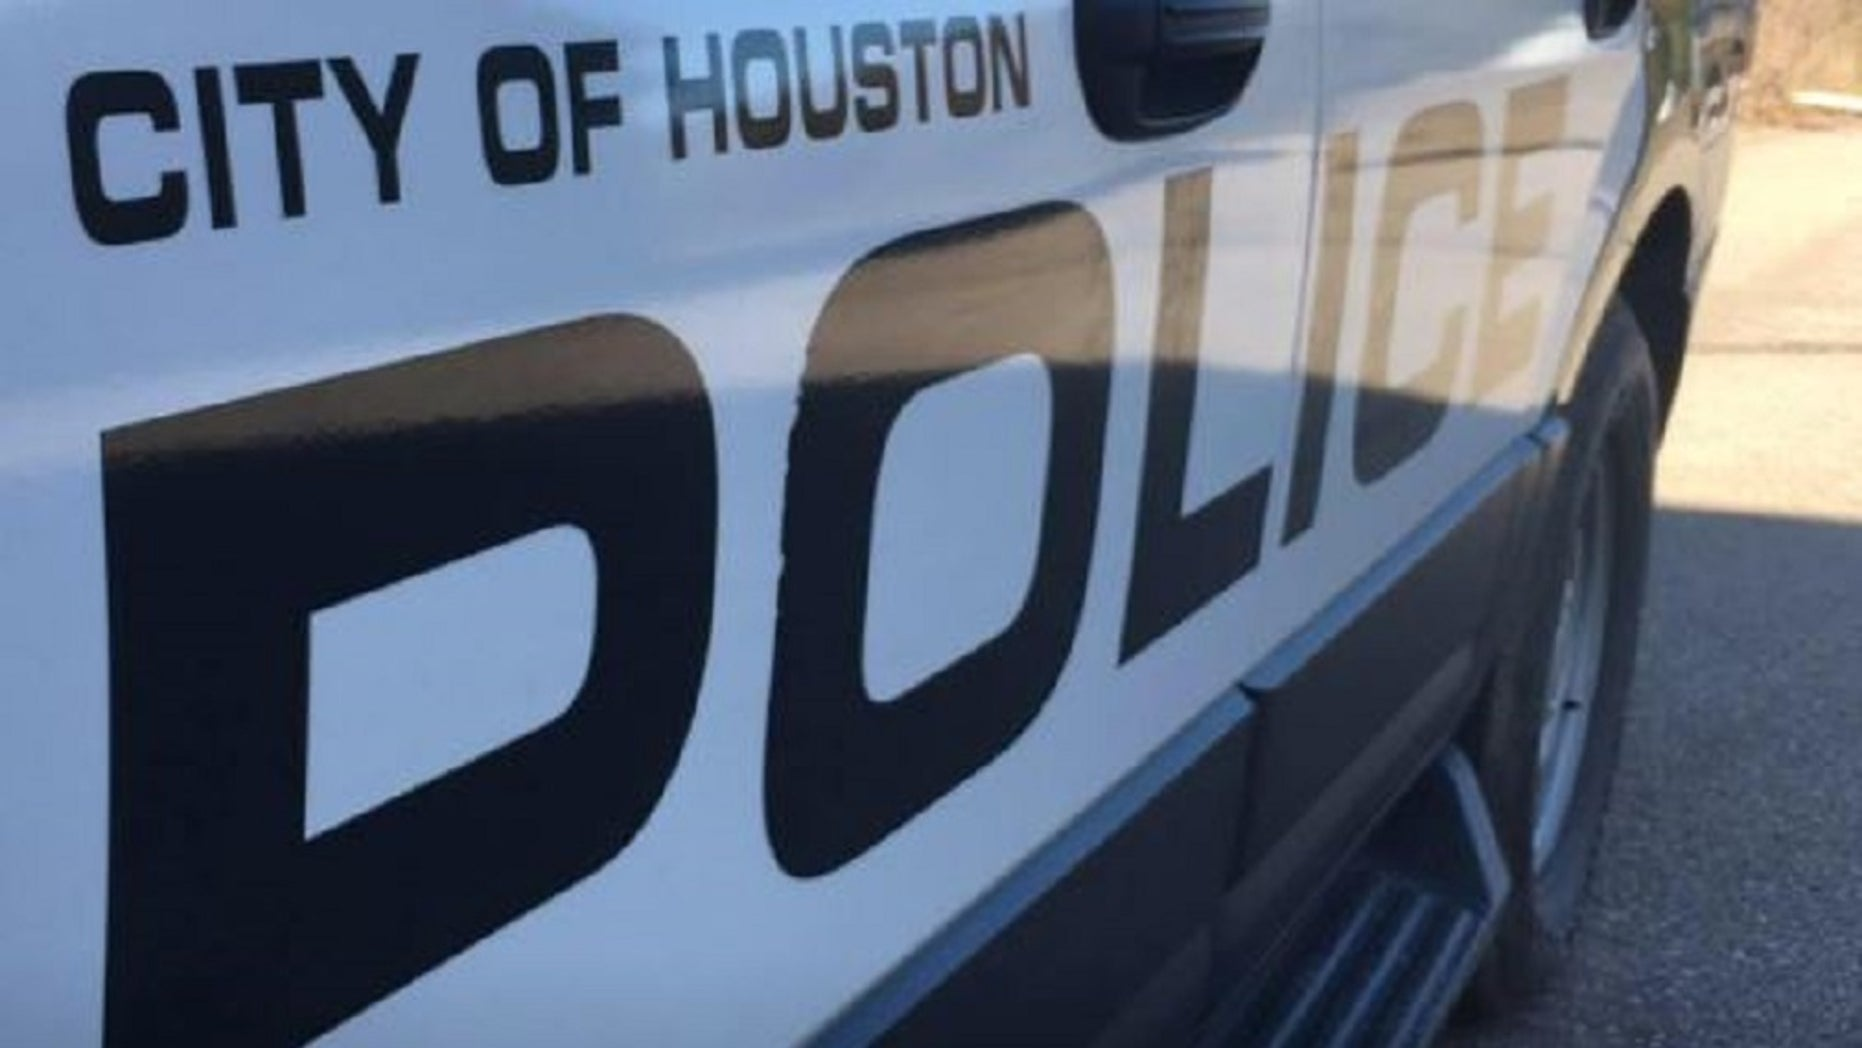 HPD tweeted late Sunday evening that two officers are injured from a car crash.